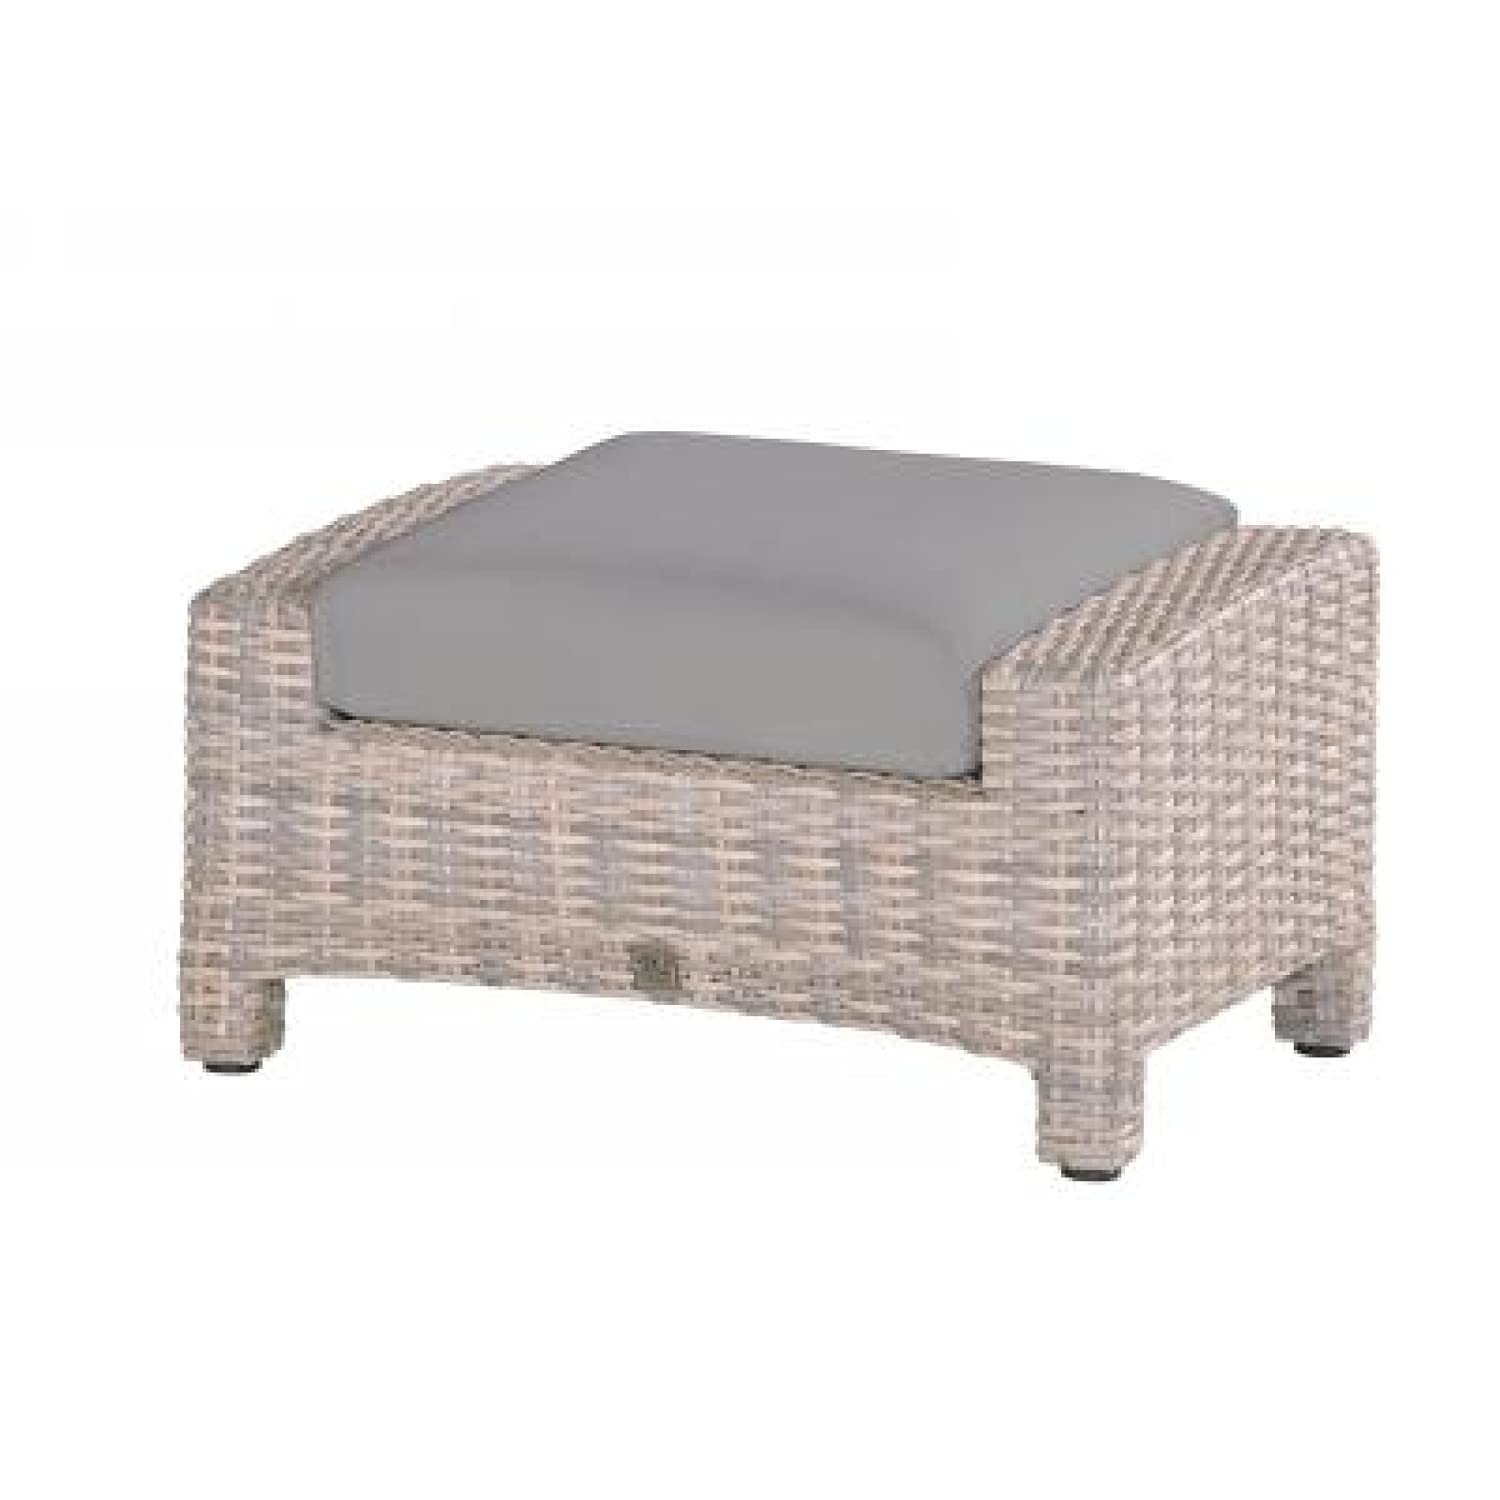 4Seasons Outdoor Fußhocker Mambo inkl Kissen Polyrattan lagun